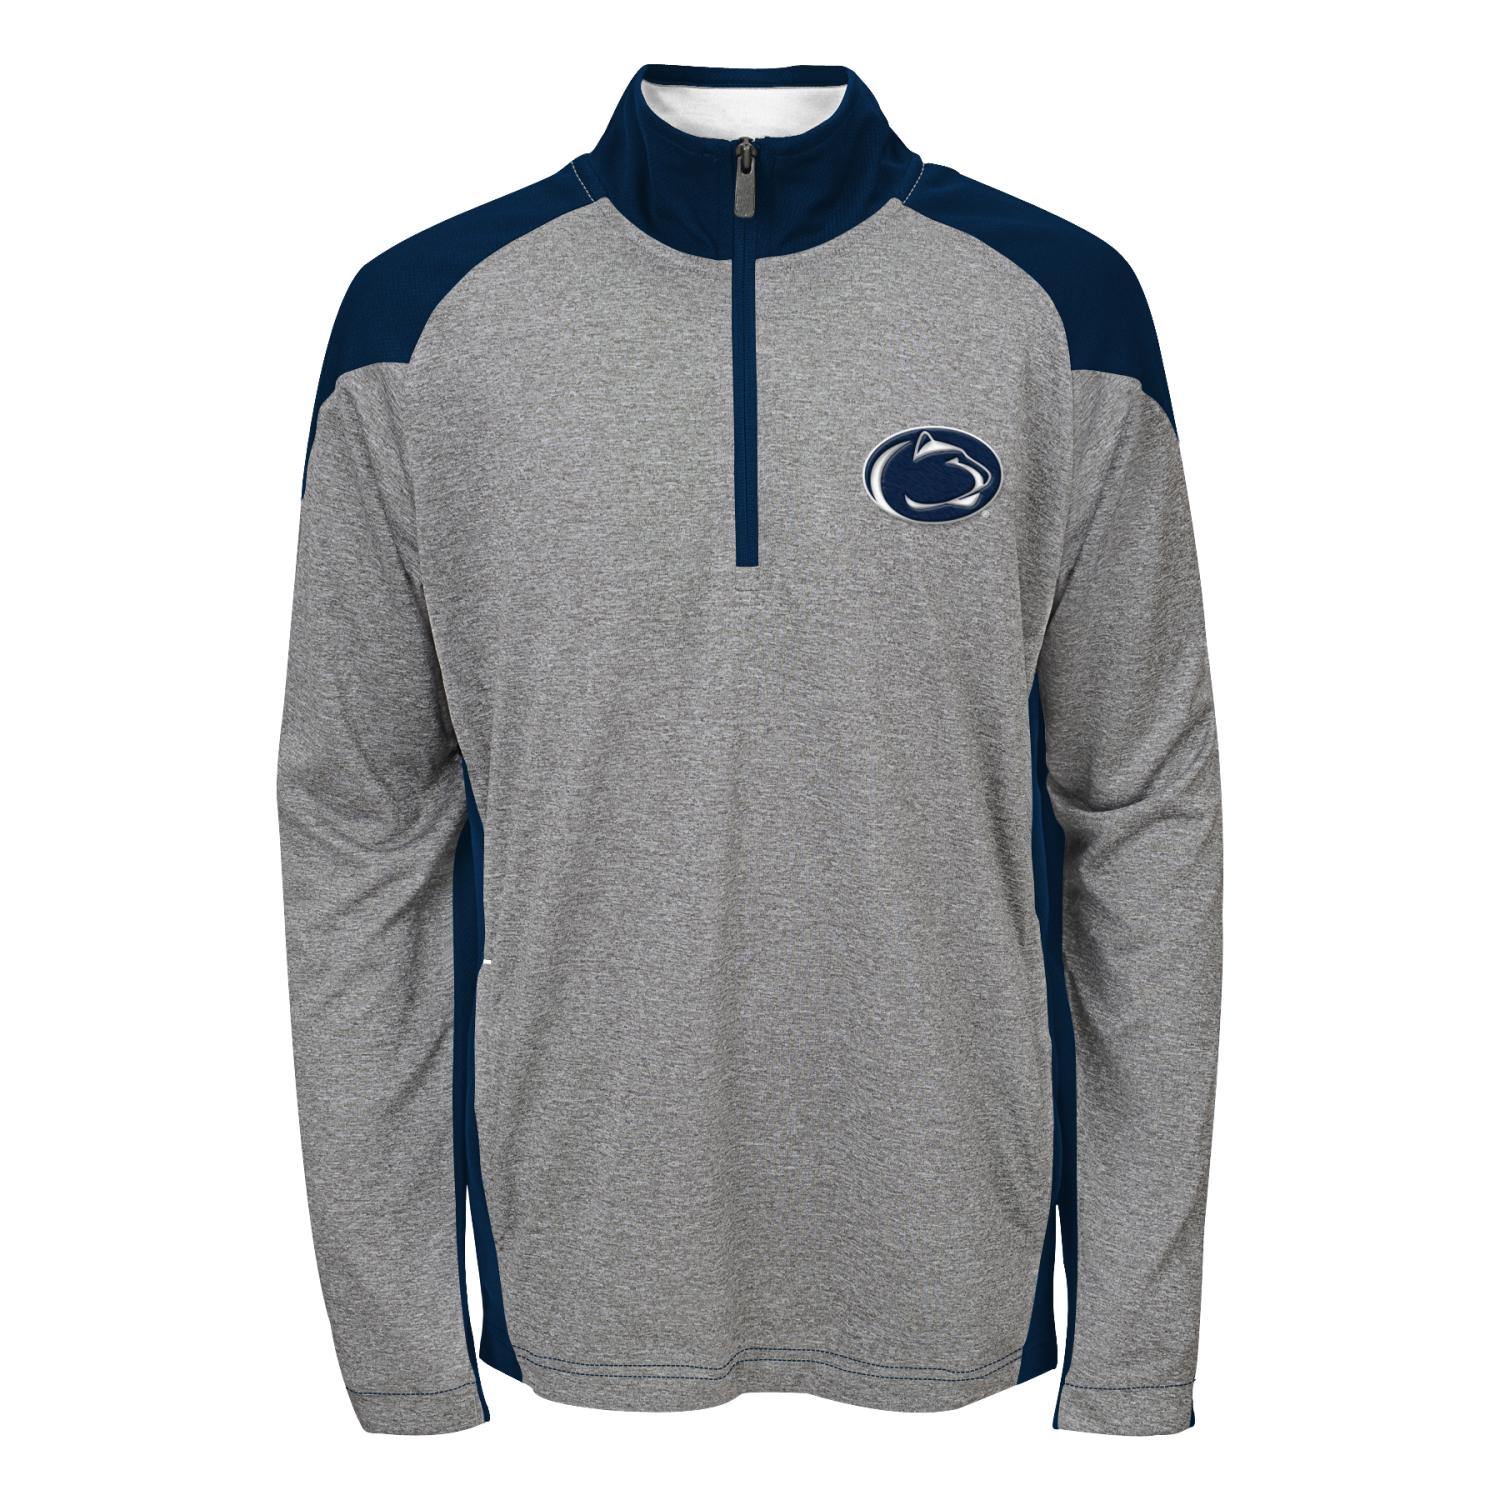 "Penn State Nittany Lions NCAA ""Helix"" Men's 1 4 Zip Pullover Jacket by Gen2"